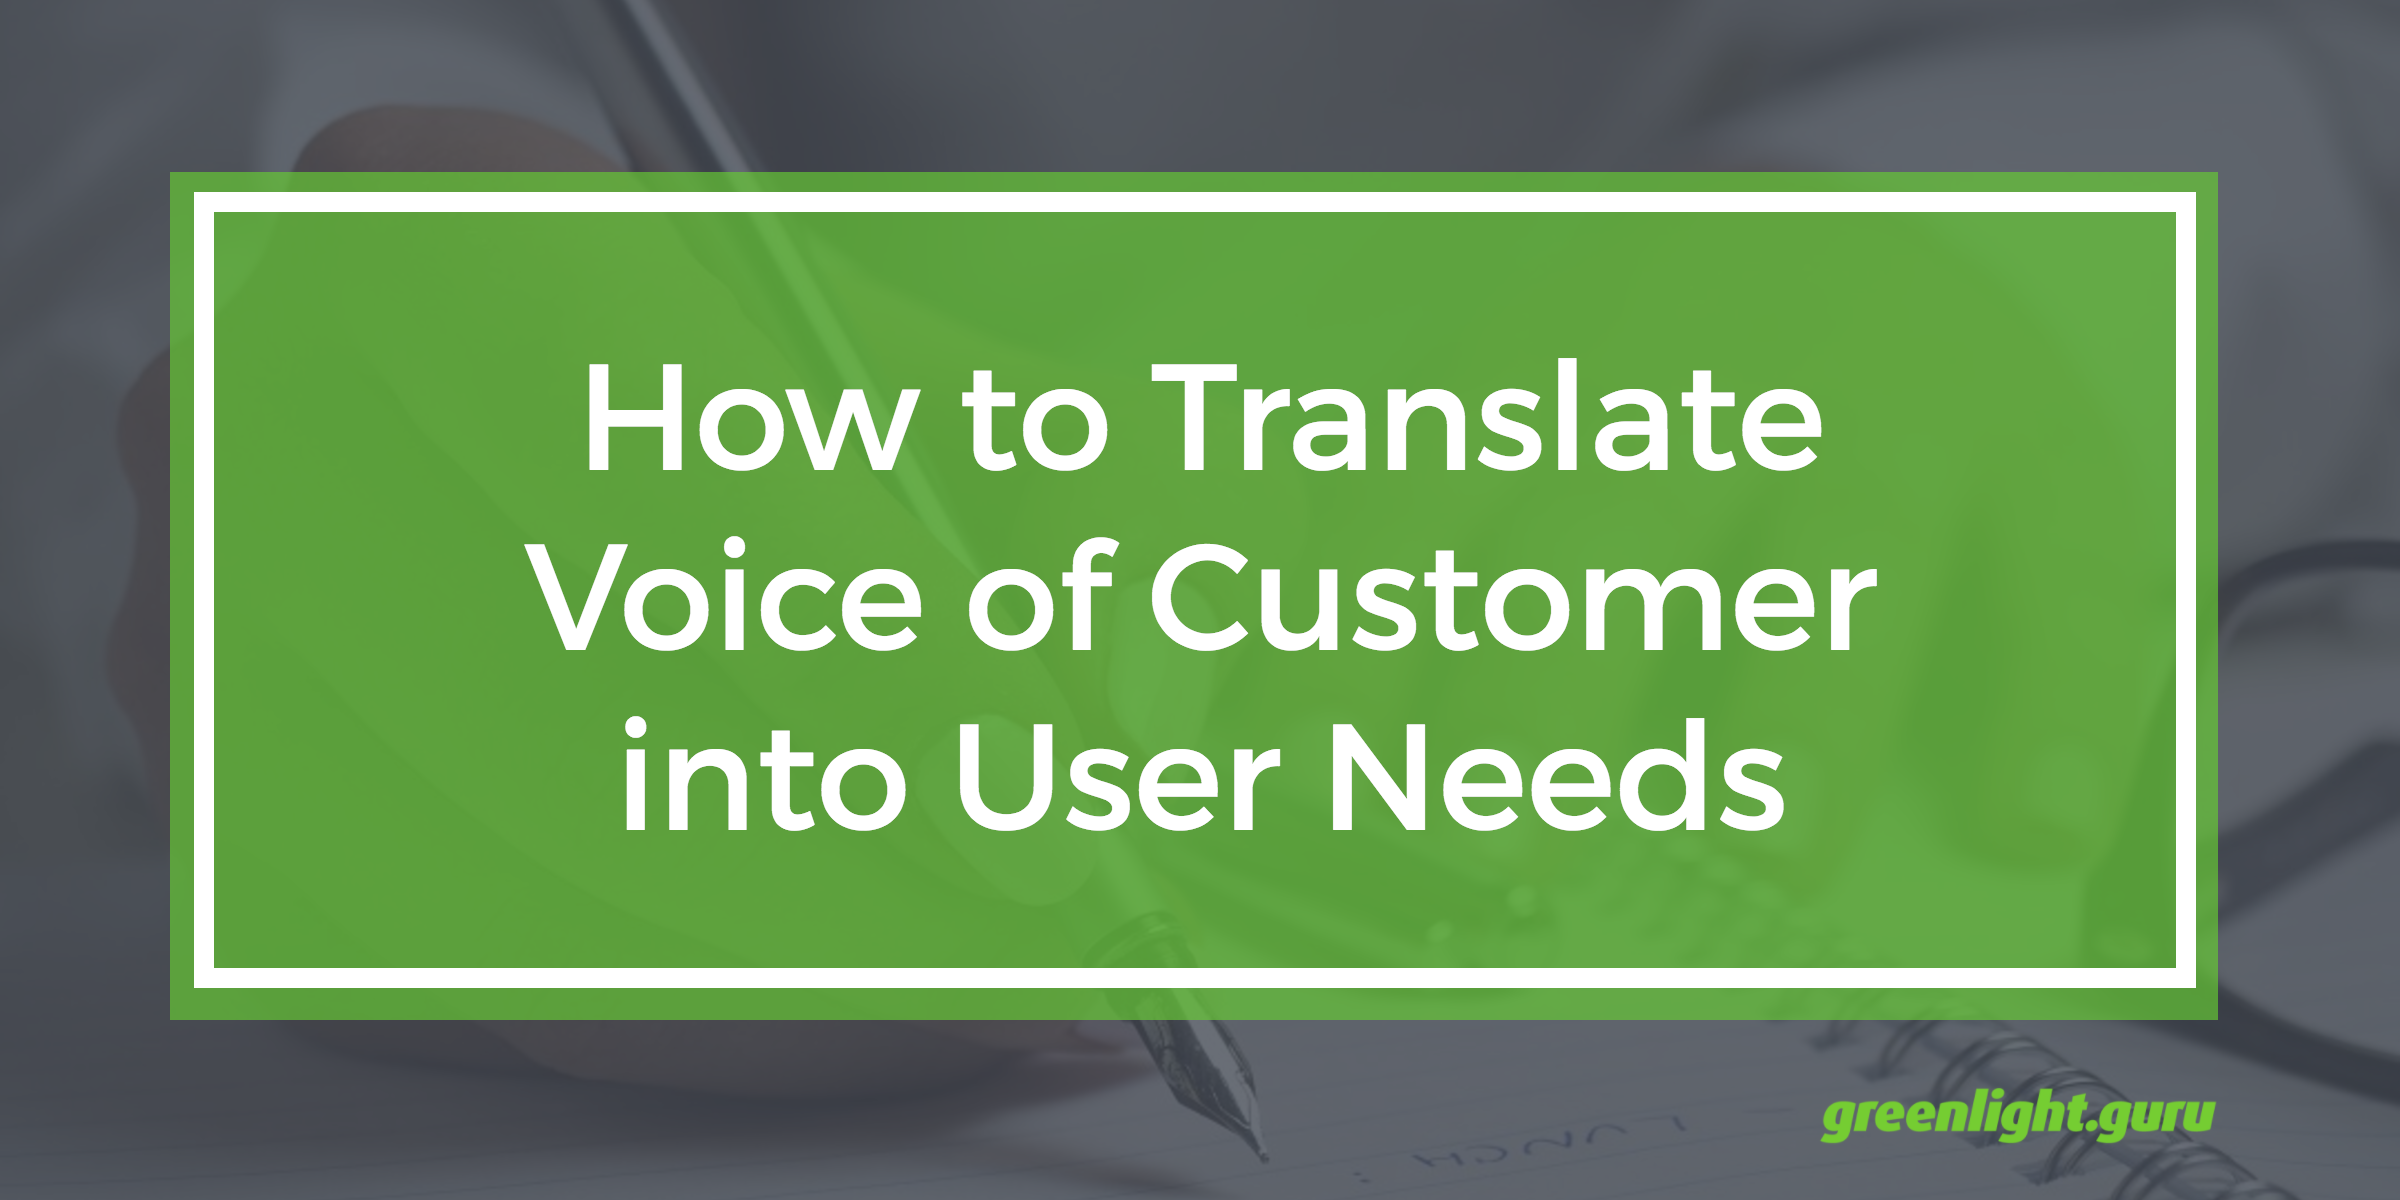 how_to_translate_voice_of_customer_into_user_needs.png